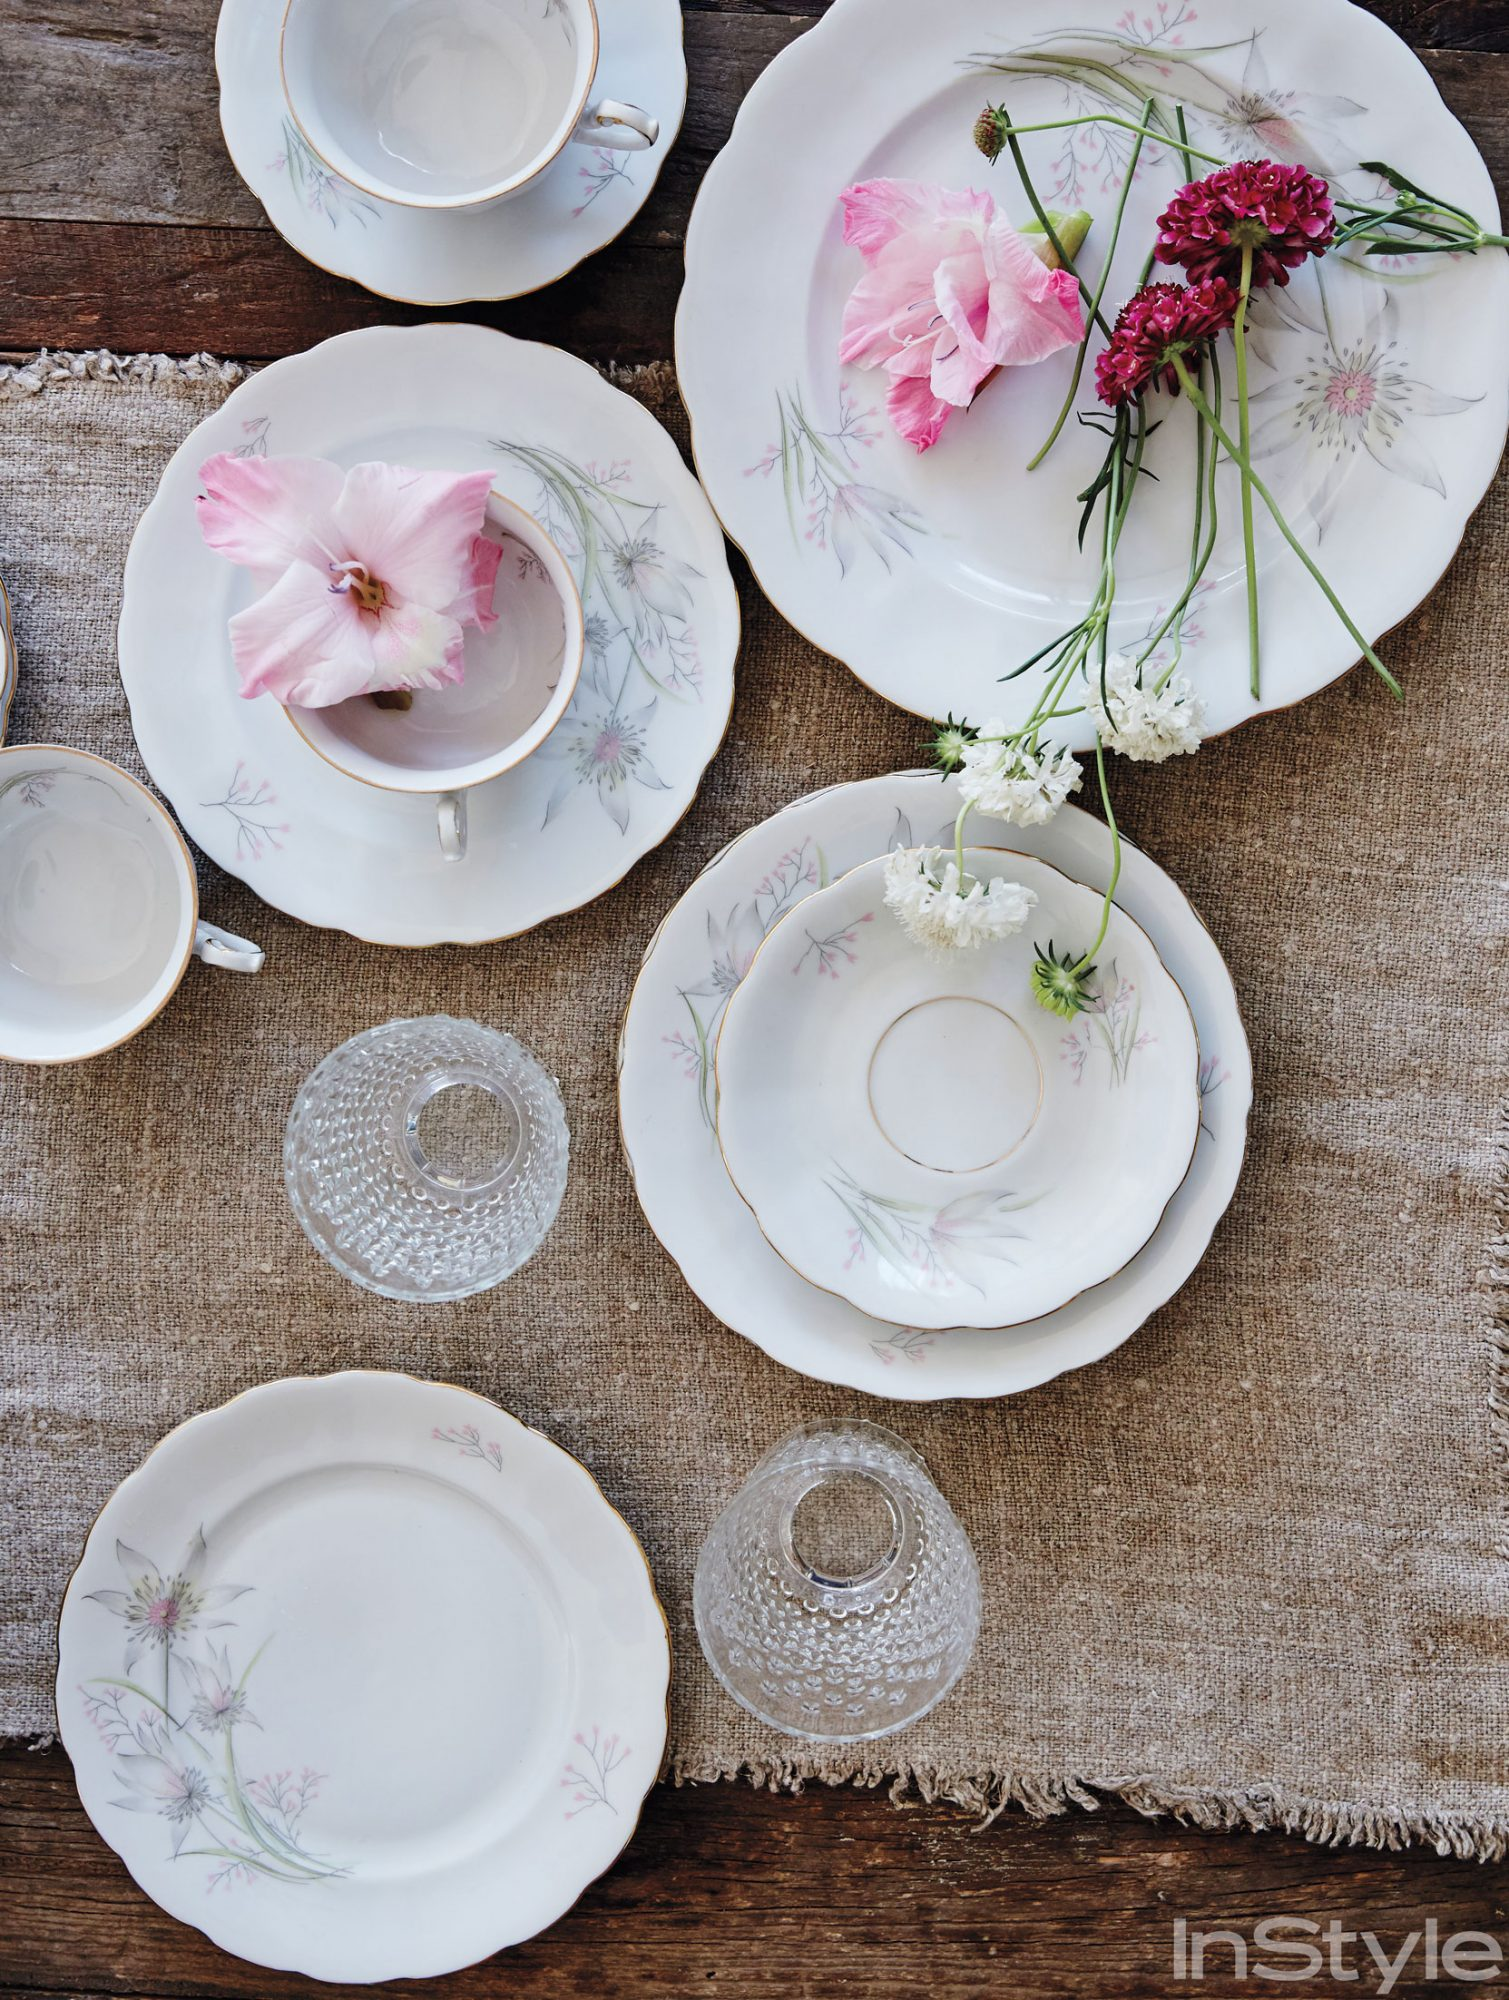 <p>GRANDMOTHER'S CHINA</p>